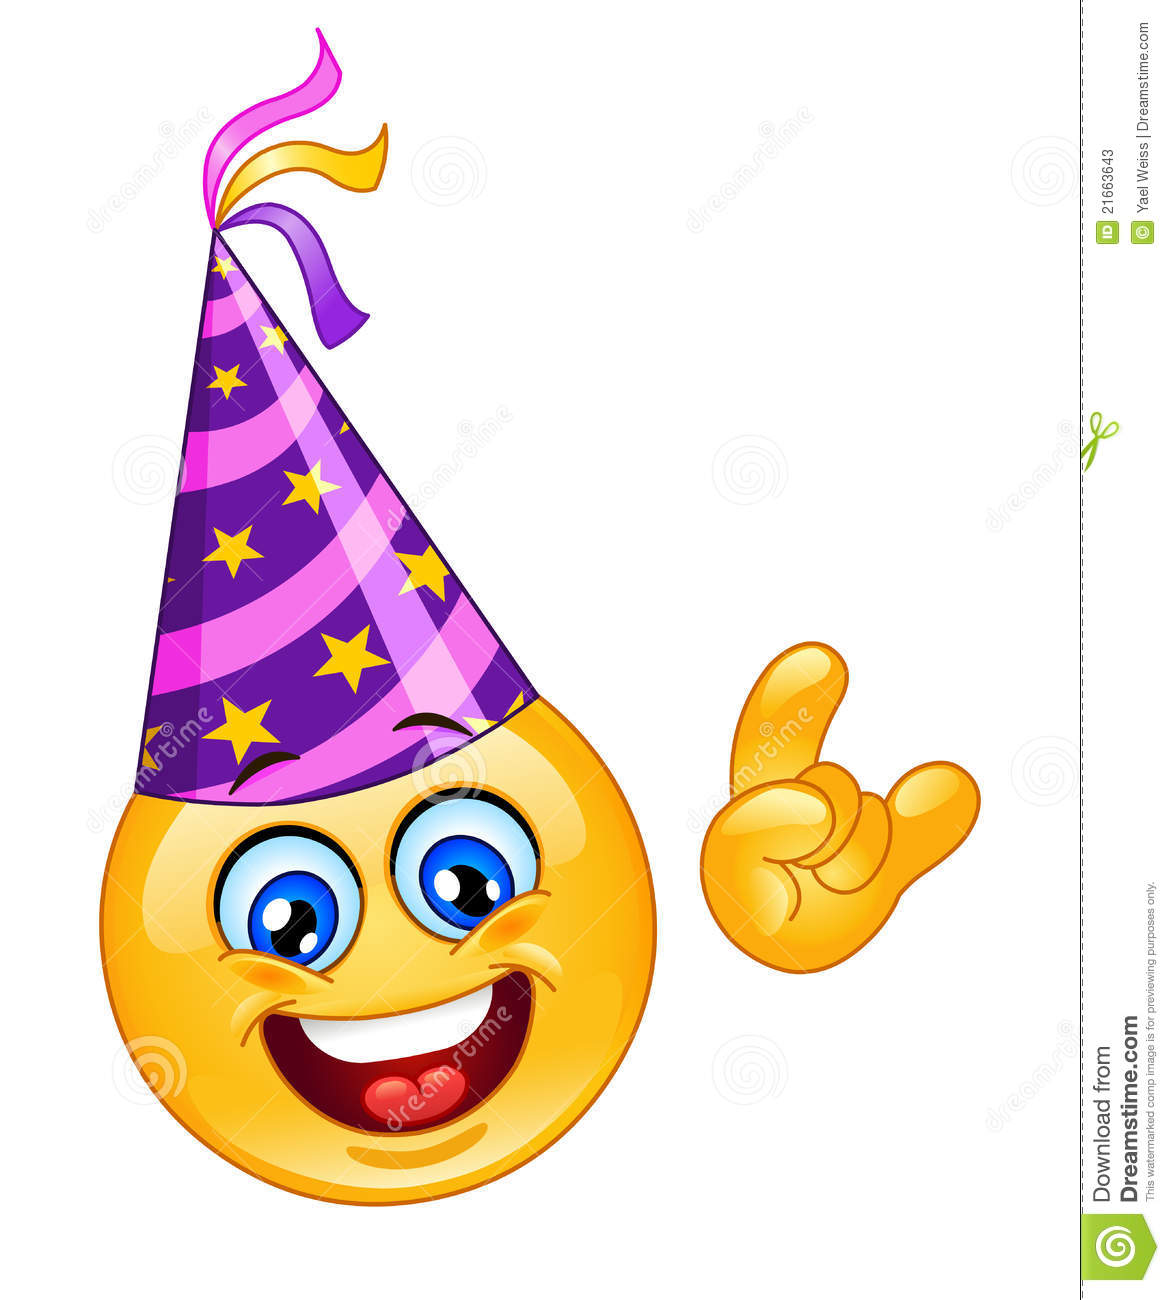 Party Emoticon Stock Photos - Image: 21663643